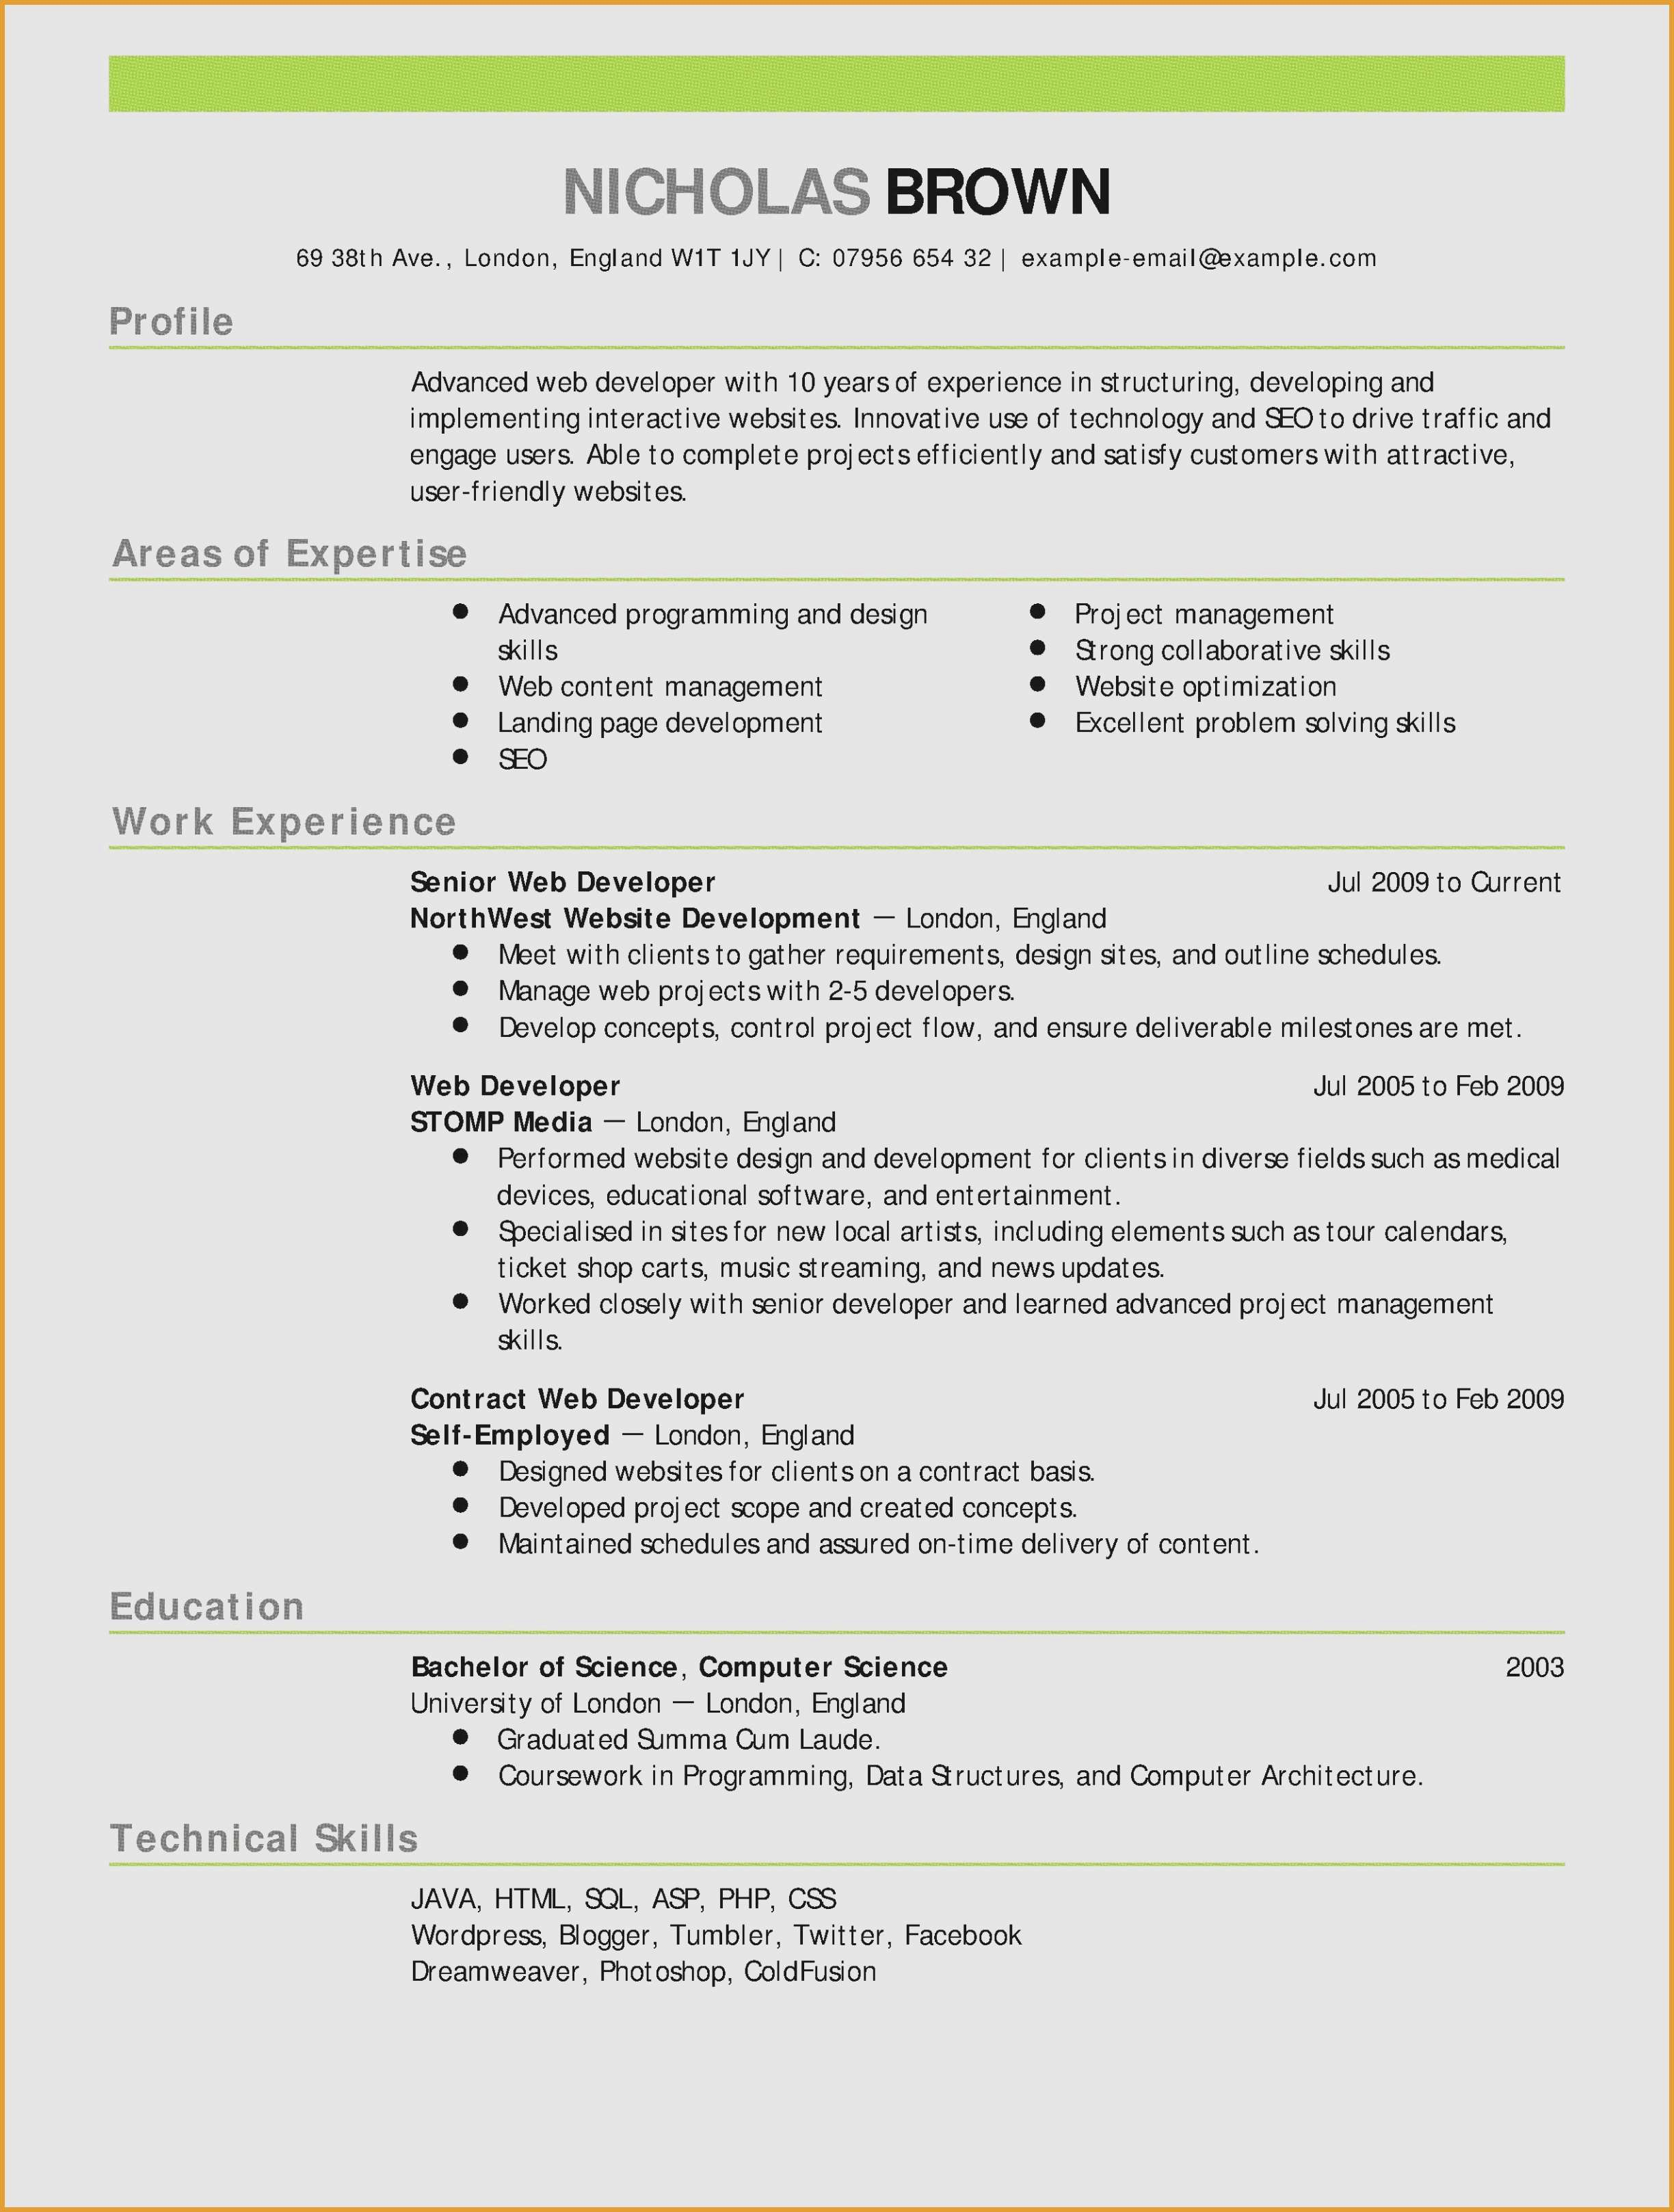 Resume Template for Computer Science - Resume for A Server Server Skills Resume Fresh Skills for A Resume